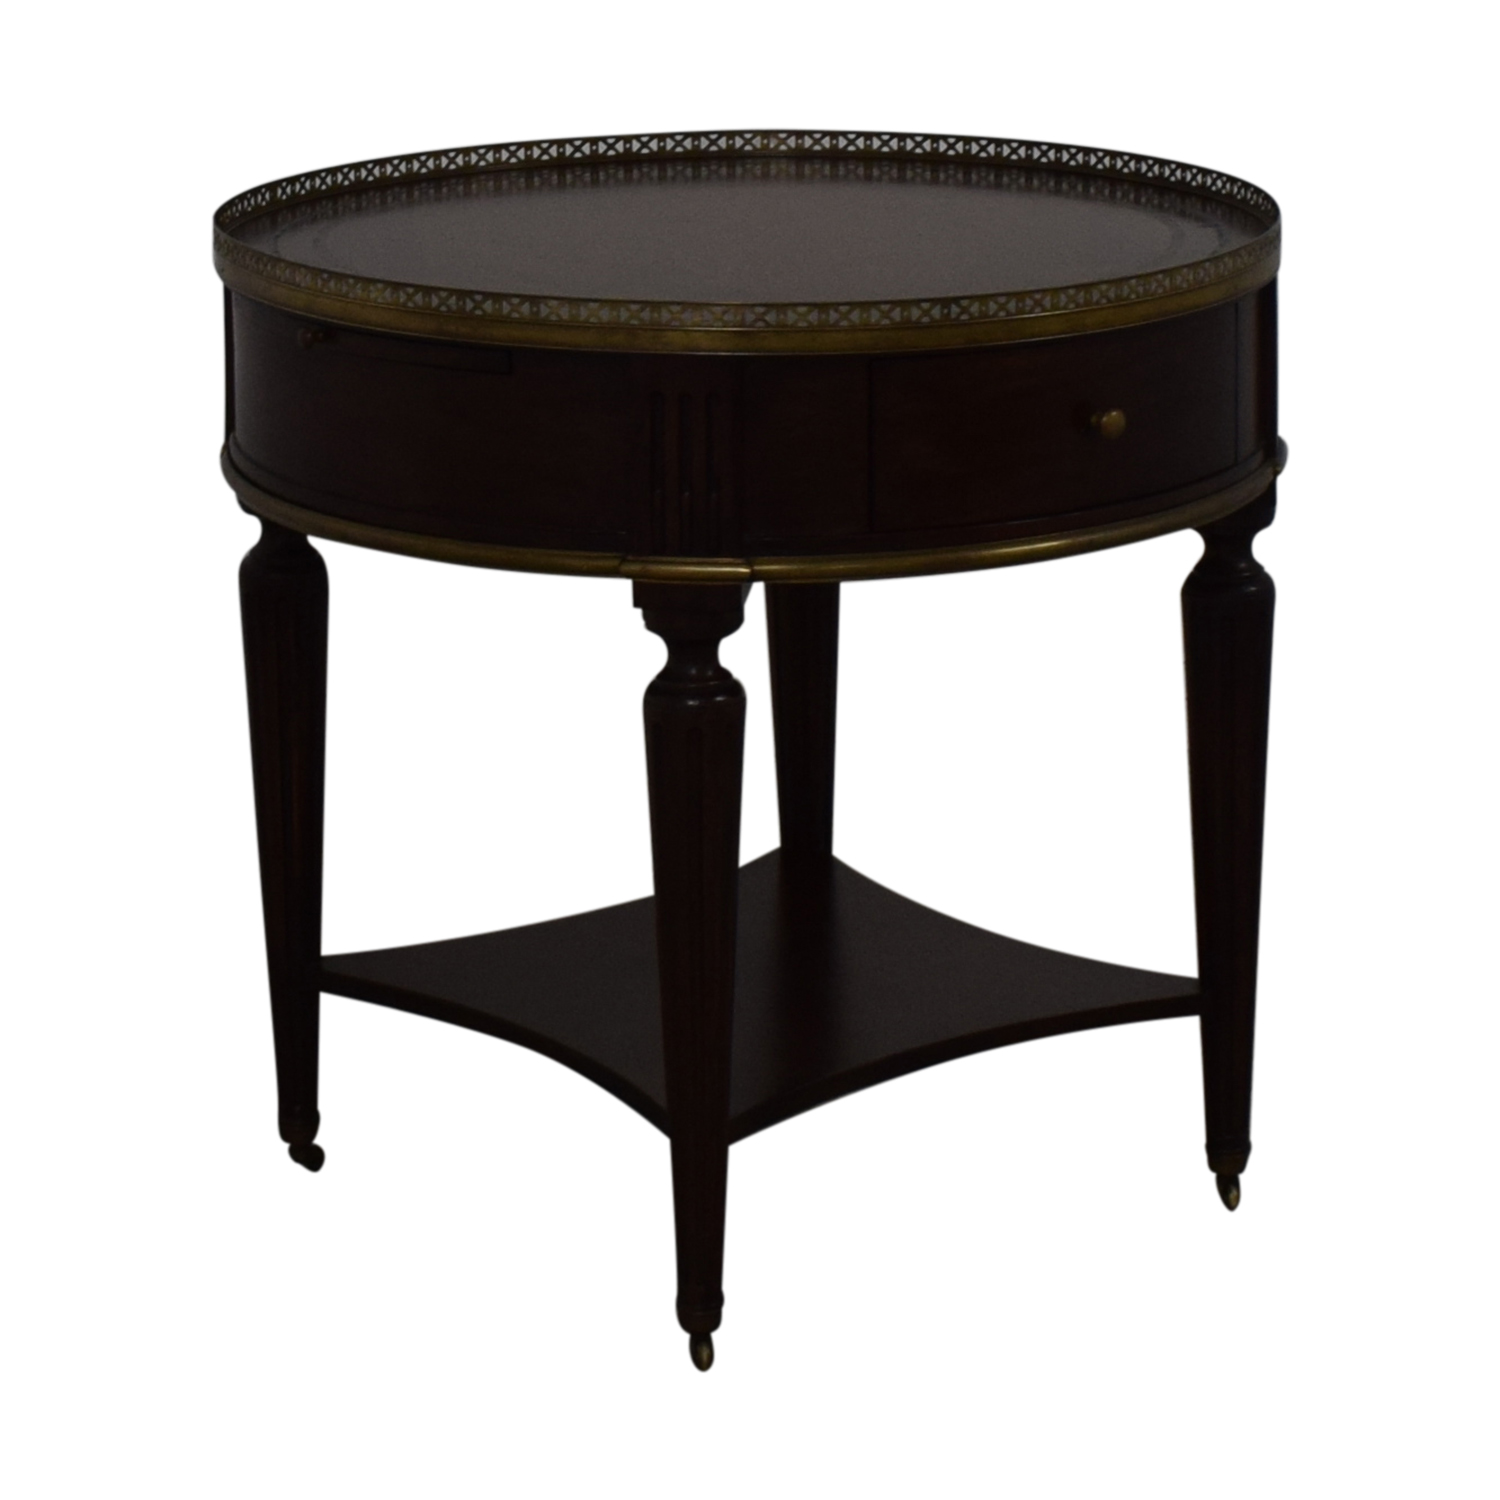 John Richard European Crossroads Bouillotte Table / Tables